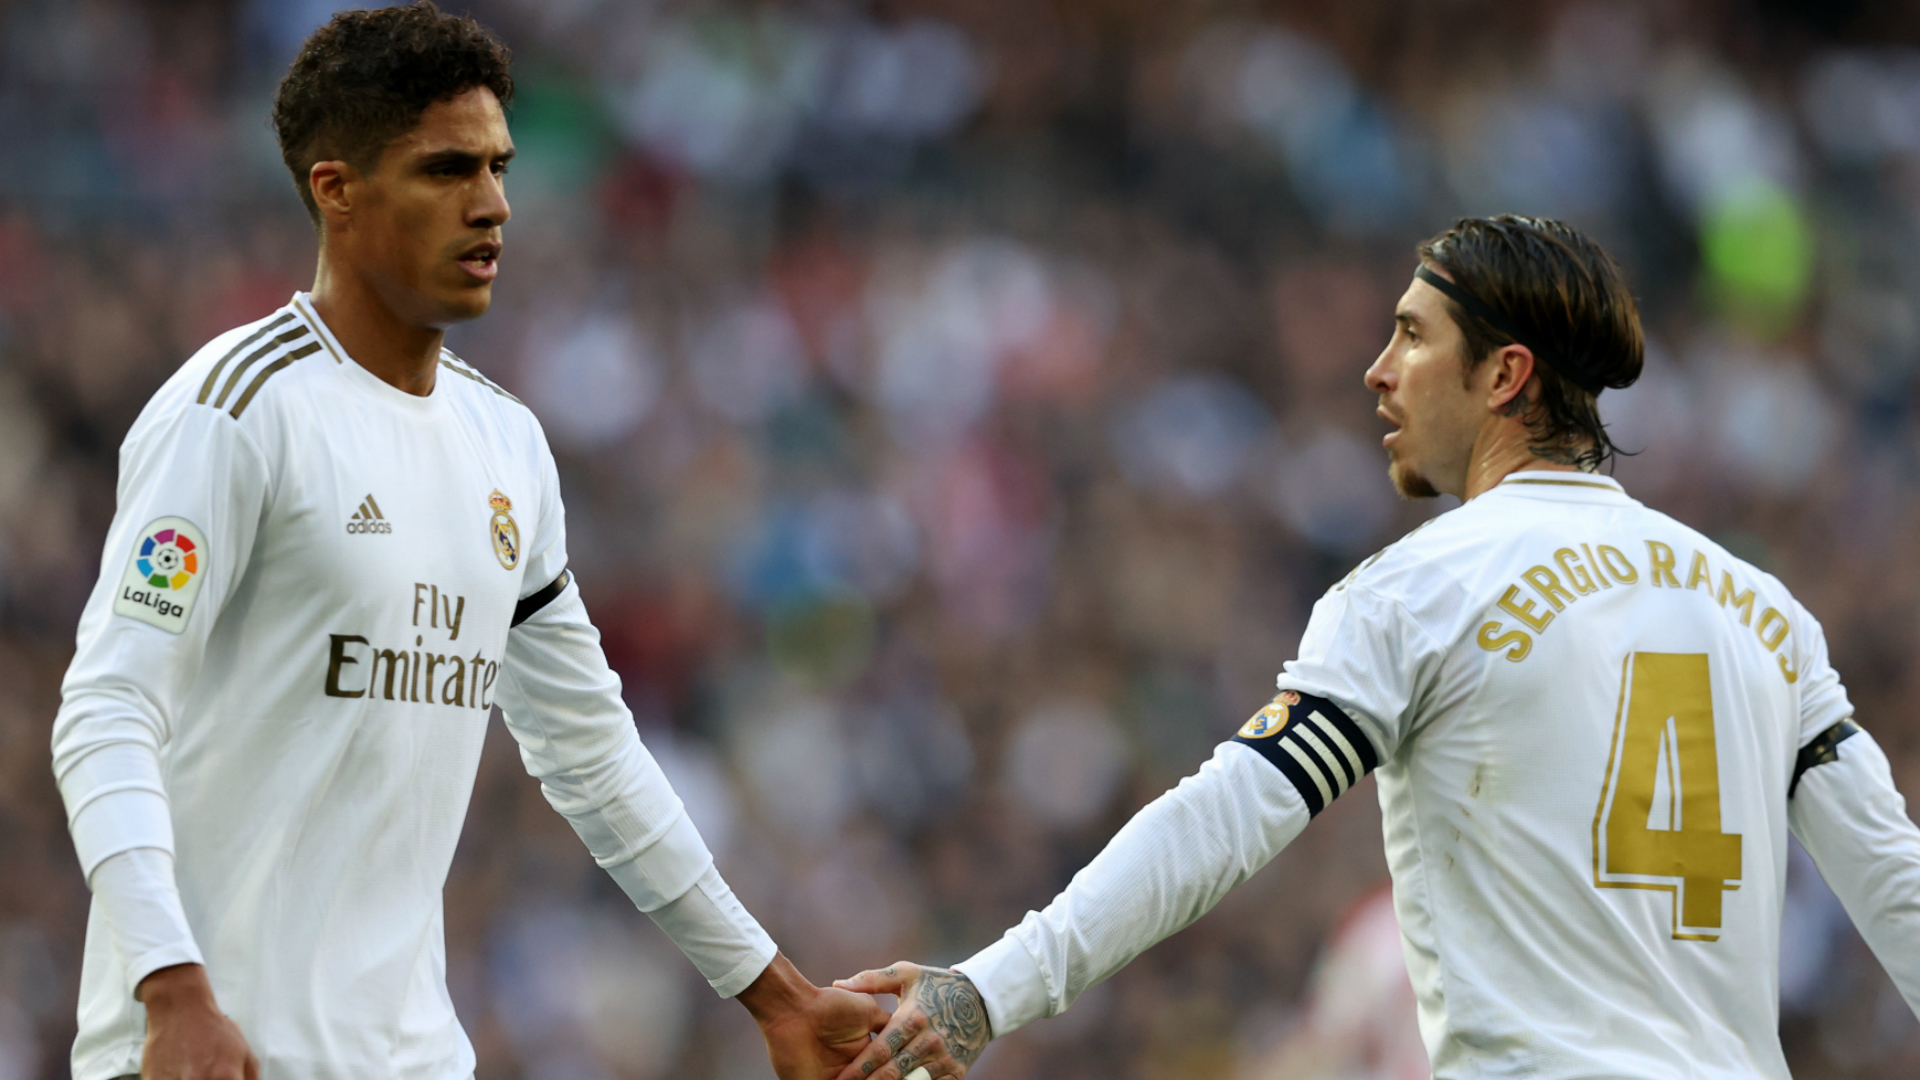 Real Madrid need many leaders in Ramos' absence against Man City – Varane